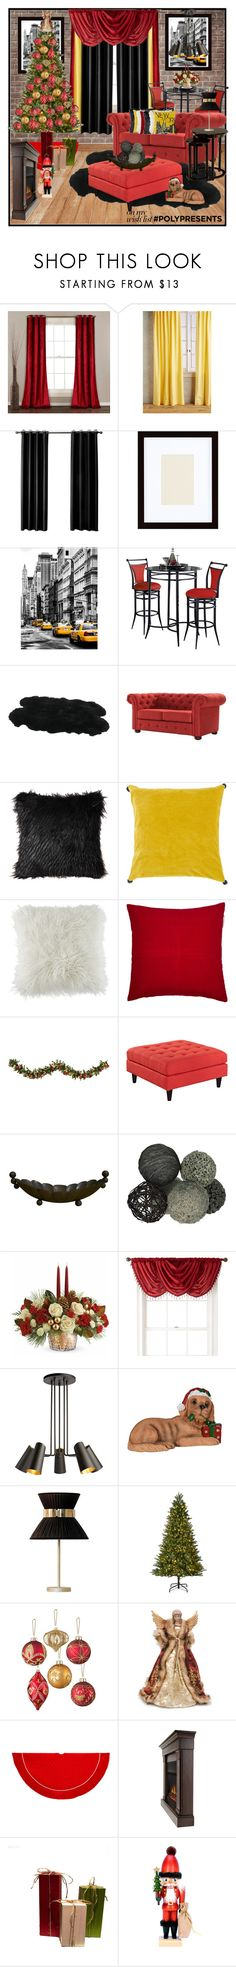 """#PolyPresents: Wish List"" by lakisha-34 ❤ liked on Polyvore featuring Anthropologie, Pottery Barn, Hillsdale Furniture, Tribecca Home, Artisan Weaver, BCBGeneration, Madura, Improvements, Royal Velvet and Sabrina Landini"